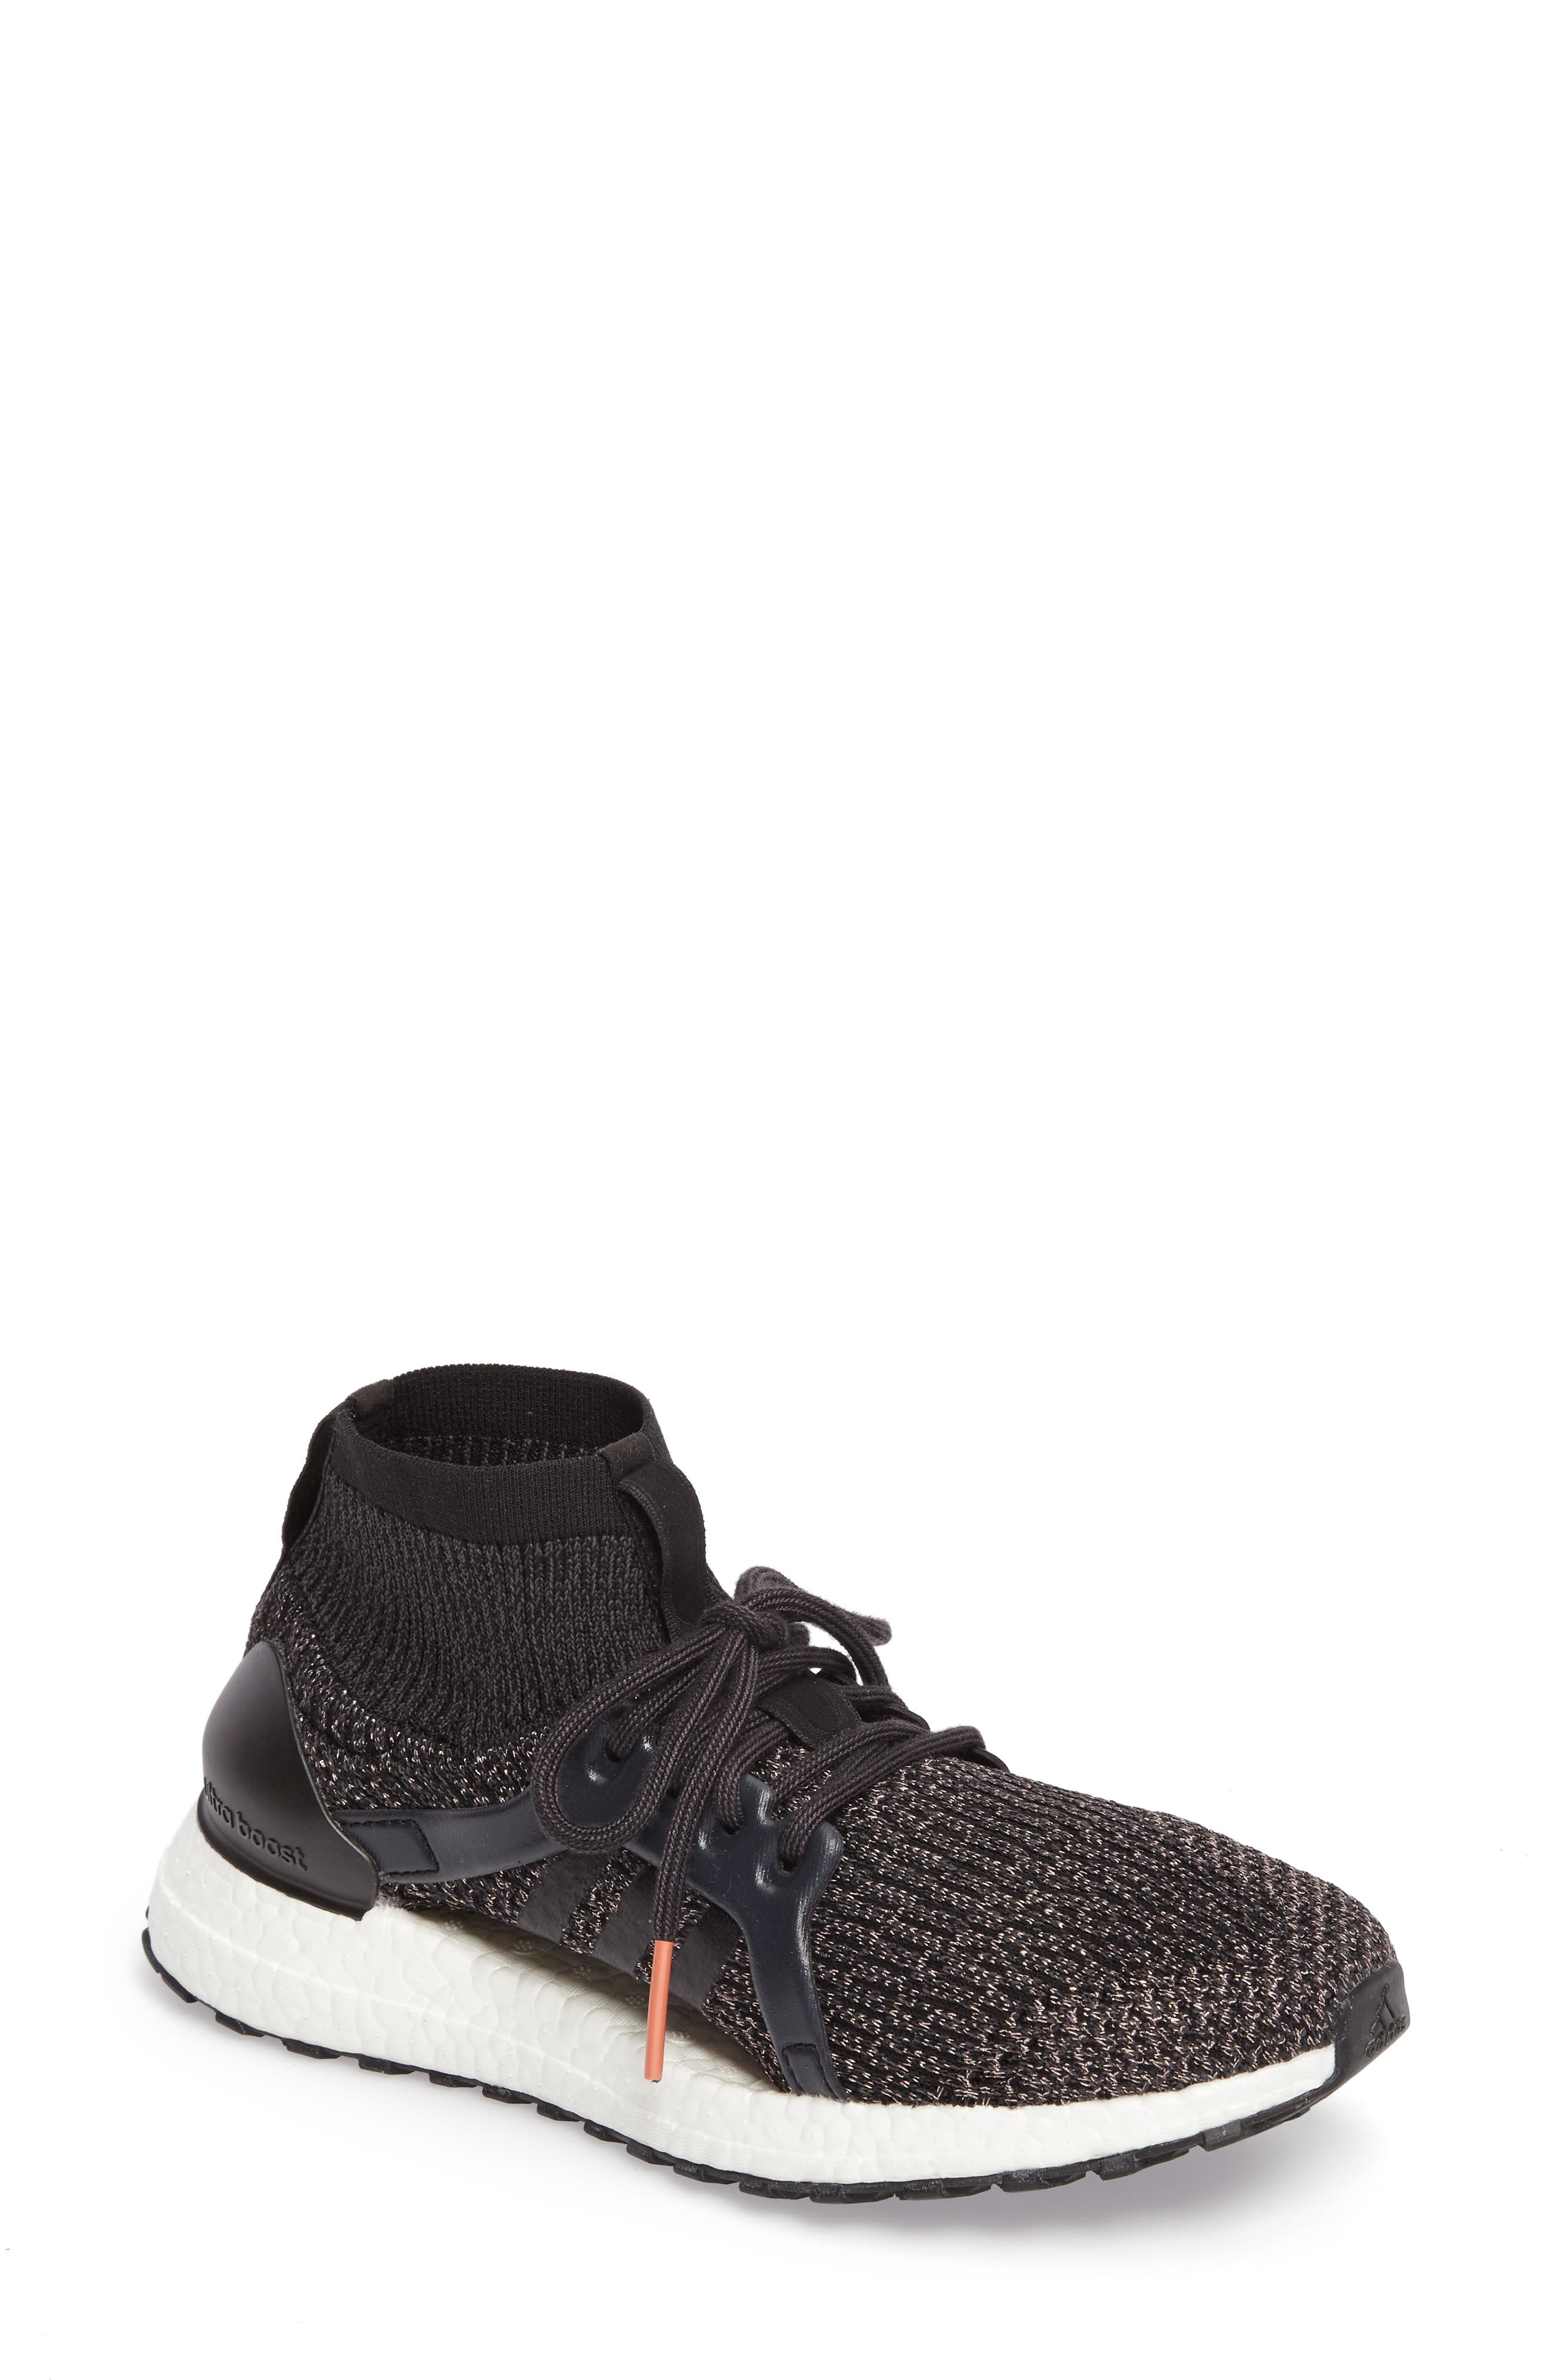 adidas Ultraboost X All Terrain LTD Running Shoe (Women)